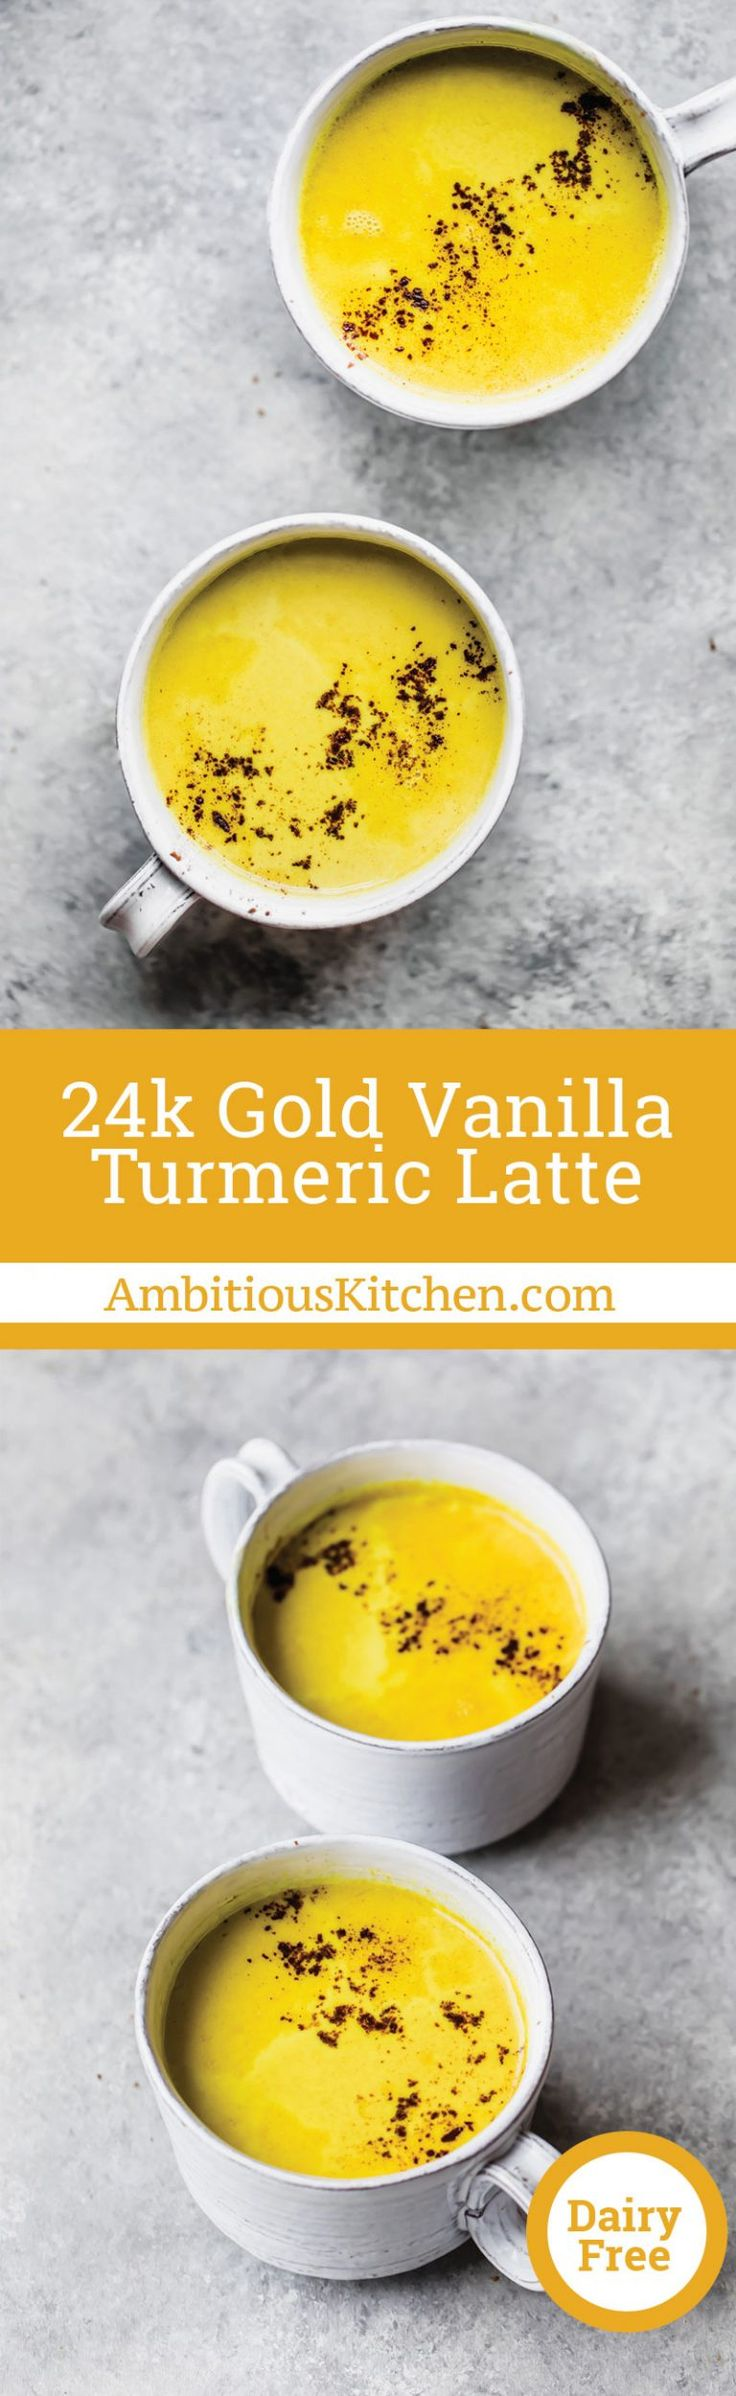 Creamy turmeric latte with hints of vanilla, cinnamon, nutmeg and cardamom. It'll make you feel like pure 24k gold. This recipe is in partnership with the amazing McCormick Spices.